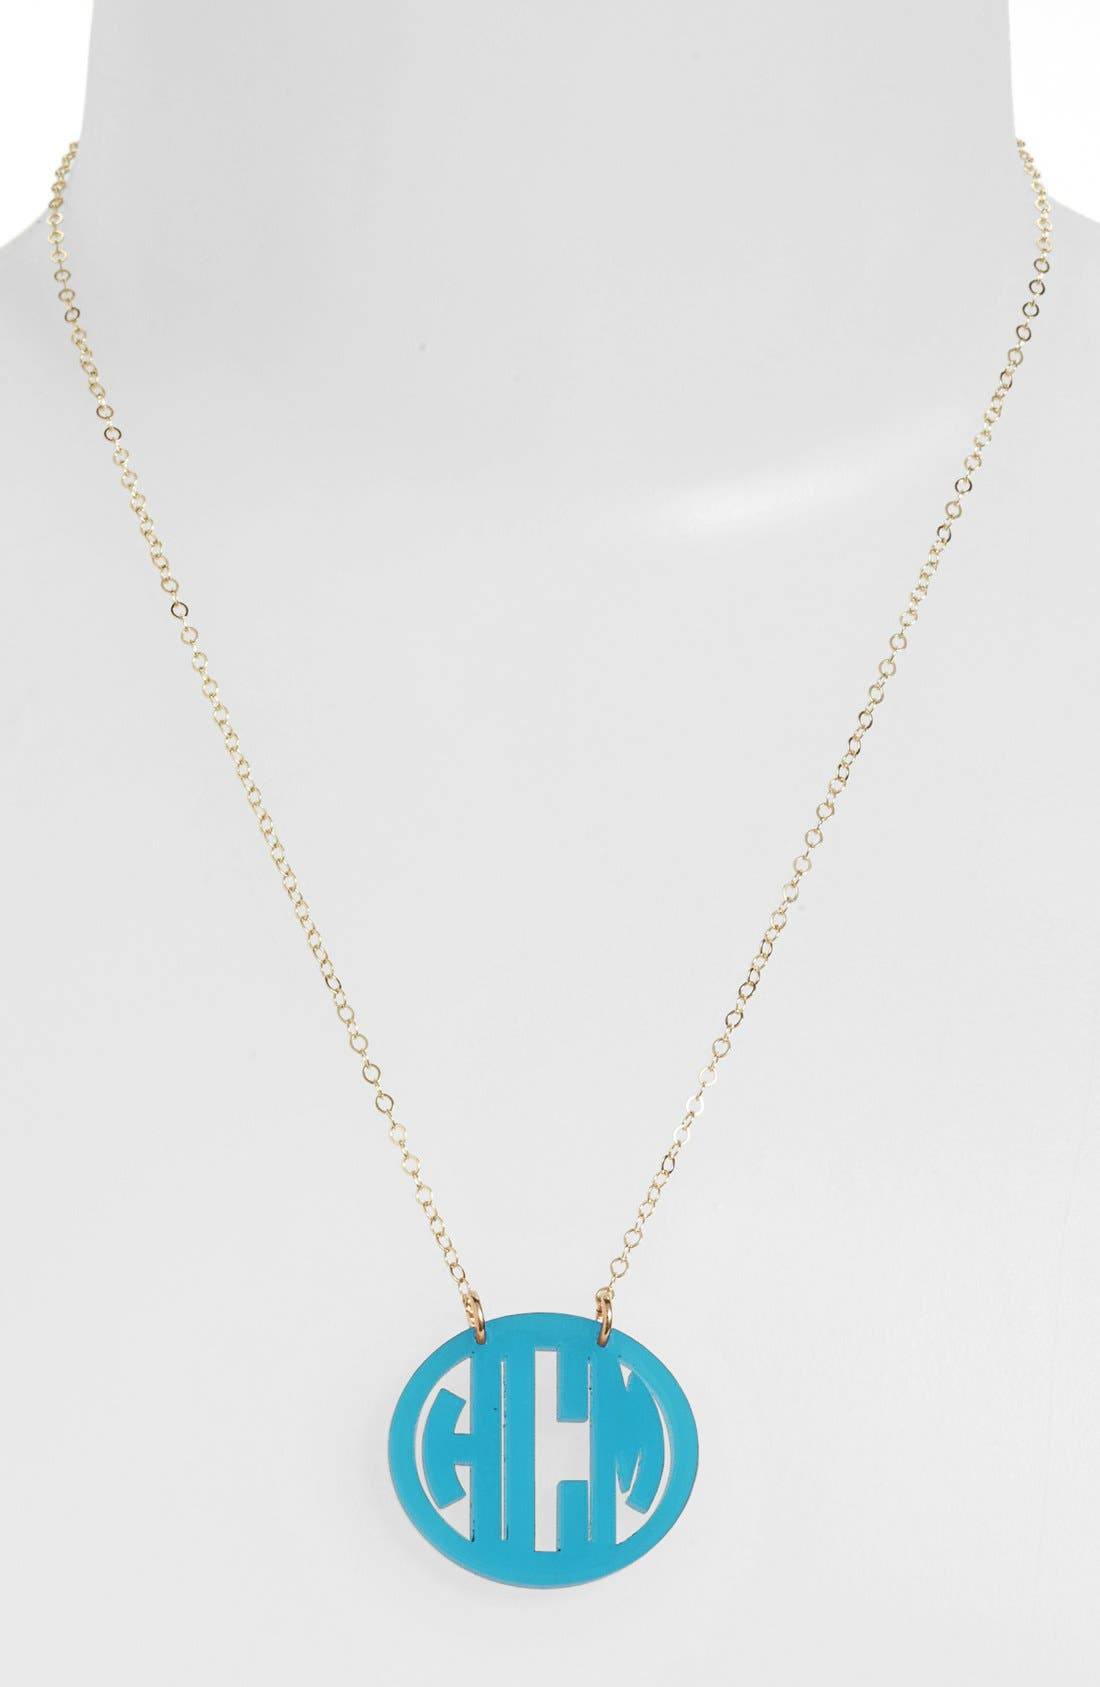 Small Personalized Monogram Pendant Necklace,                             Main thumbnail 1, color,                             TURQUOISE/ GOLD